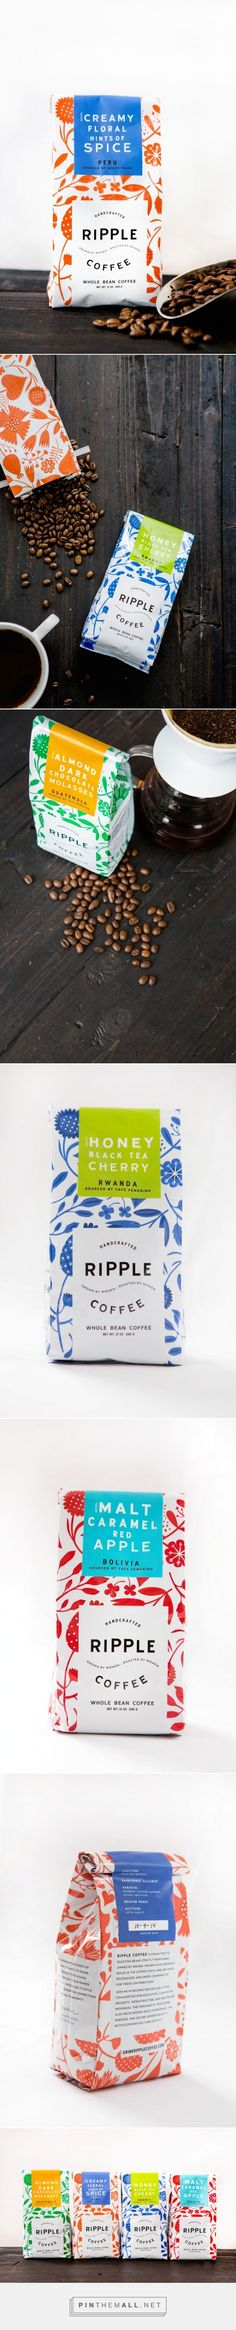 Ripple Coffee by Design Womb. Pin curated by #SFields99 #packaging #design